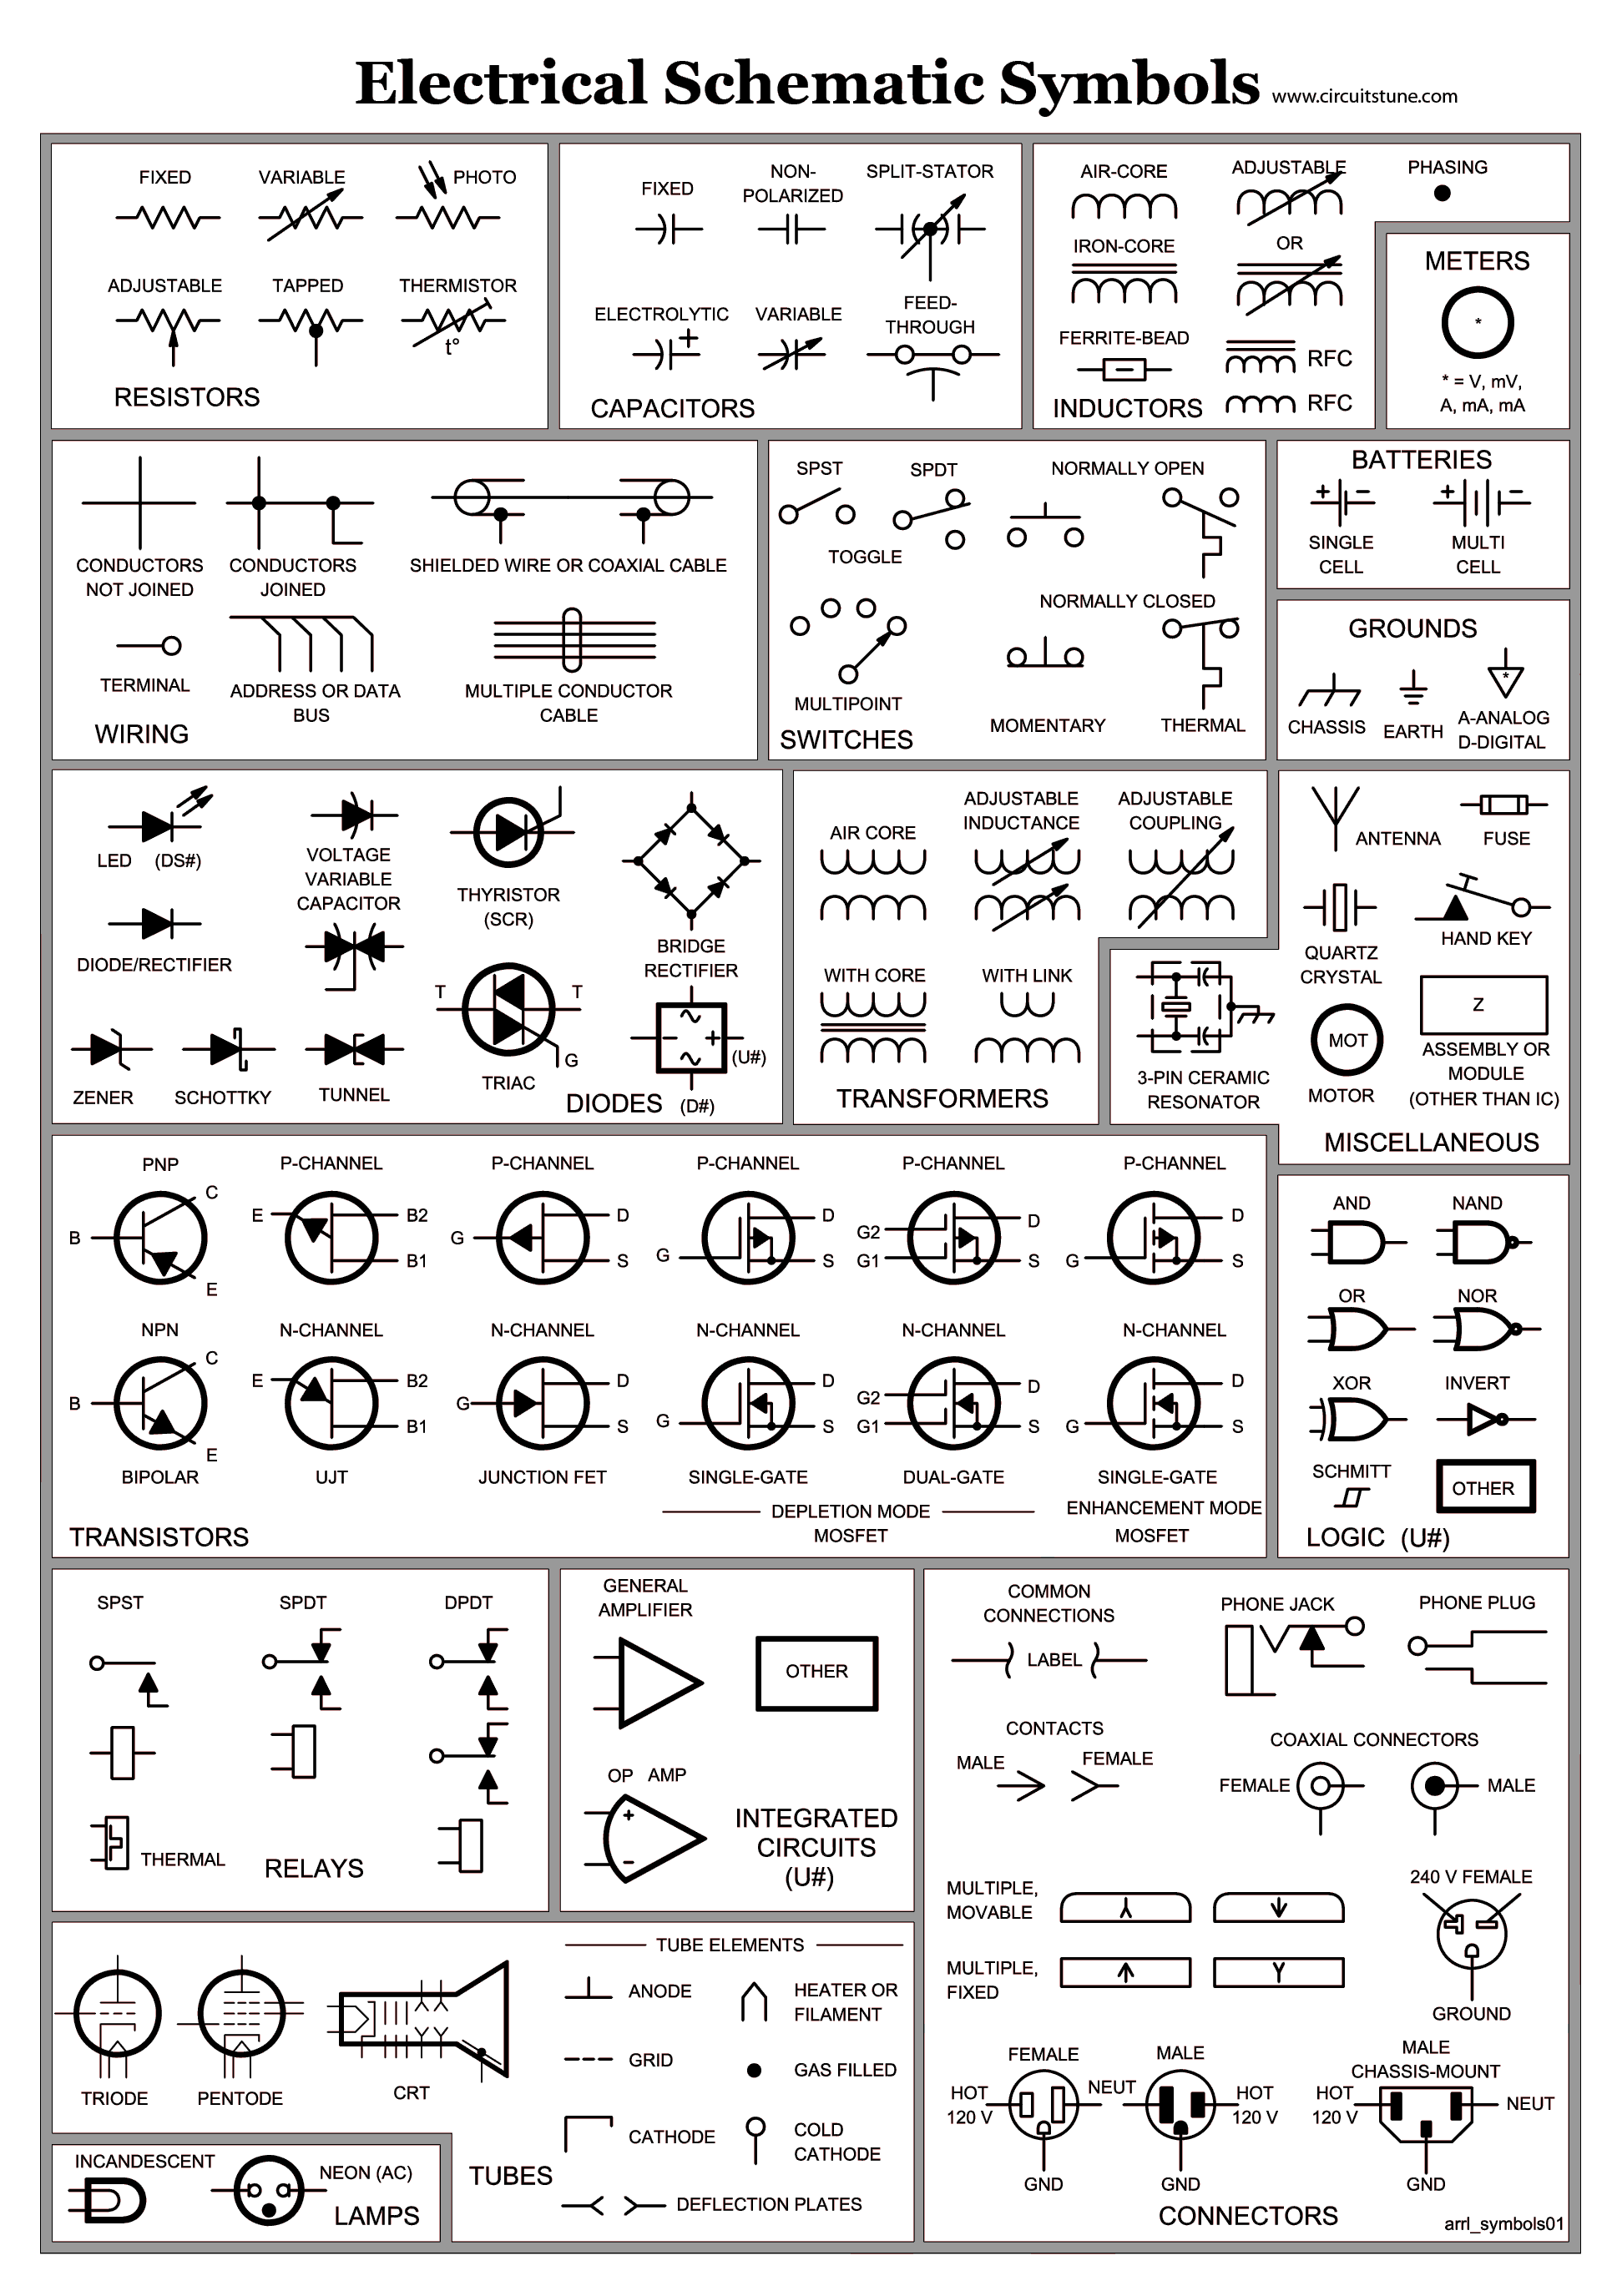 medium resolution of electrical schematic symbols wire diagram symbols automotive wiringelectrical schematic symbols wire diagram symbols automotive wiring schematic